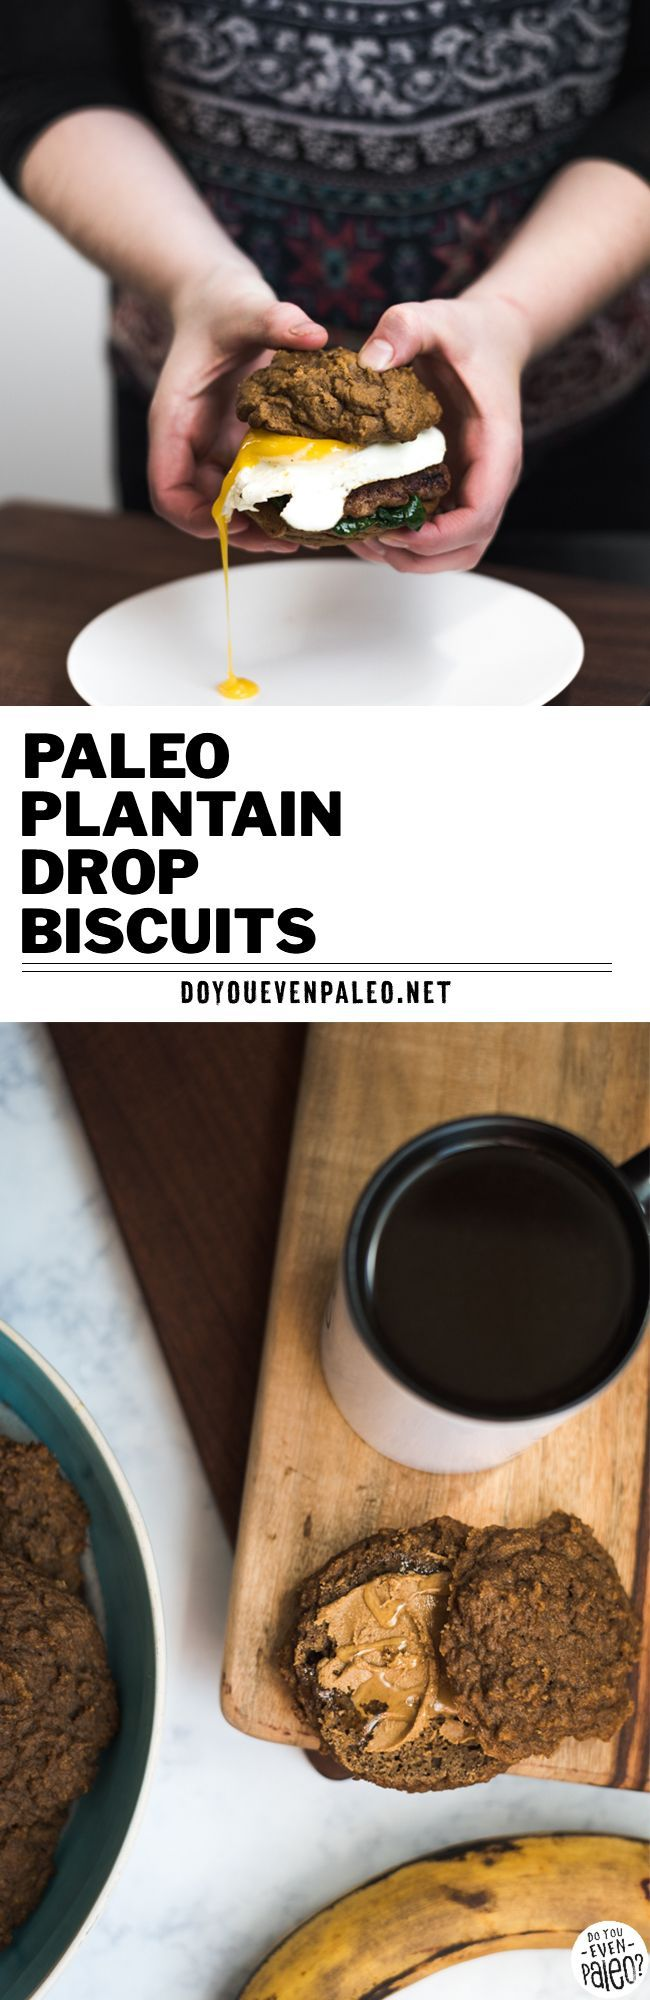 Easy paleo plantain drop biscuits made with just your blender! Use these sweet plantain biscuits for breakfast sandwiches, nut butter & jam sandwiches, or just as a snack. This healthy baked plantain recipe is also gluten free, unsweetened, and clean eating. | DoYouEvenPaleo.net #paleo #doyouevenpaleo #glutenfree